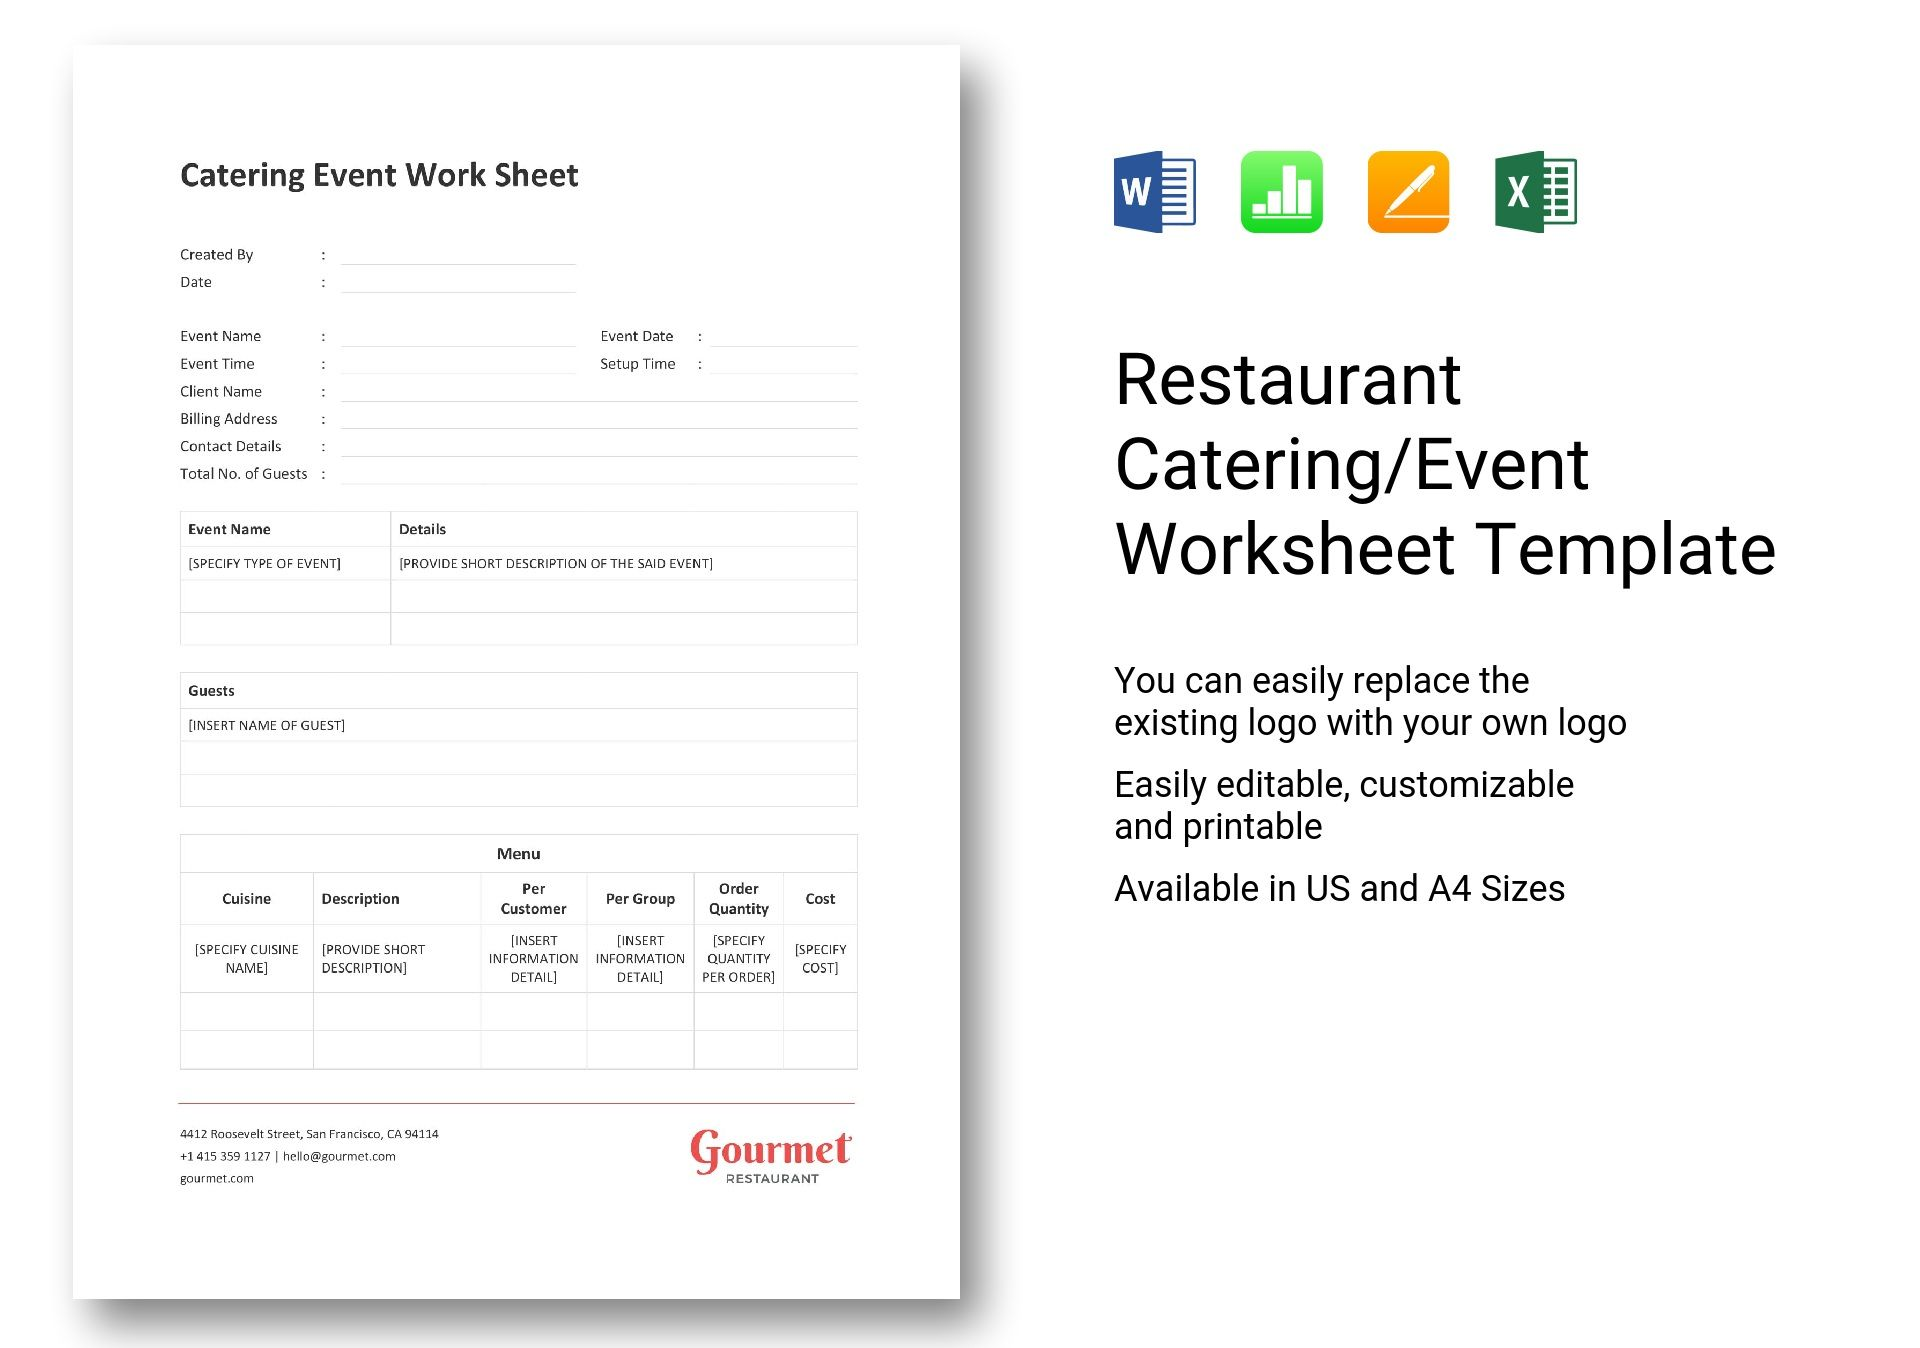 Restaurant Catering Event Worksheet Template In Word